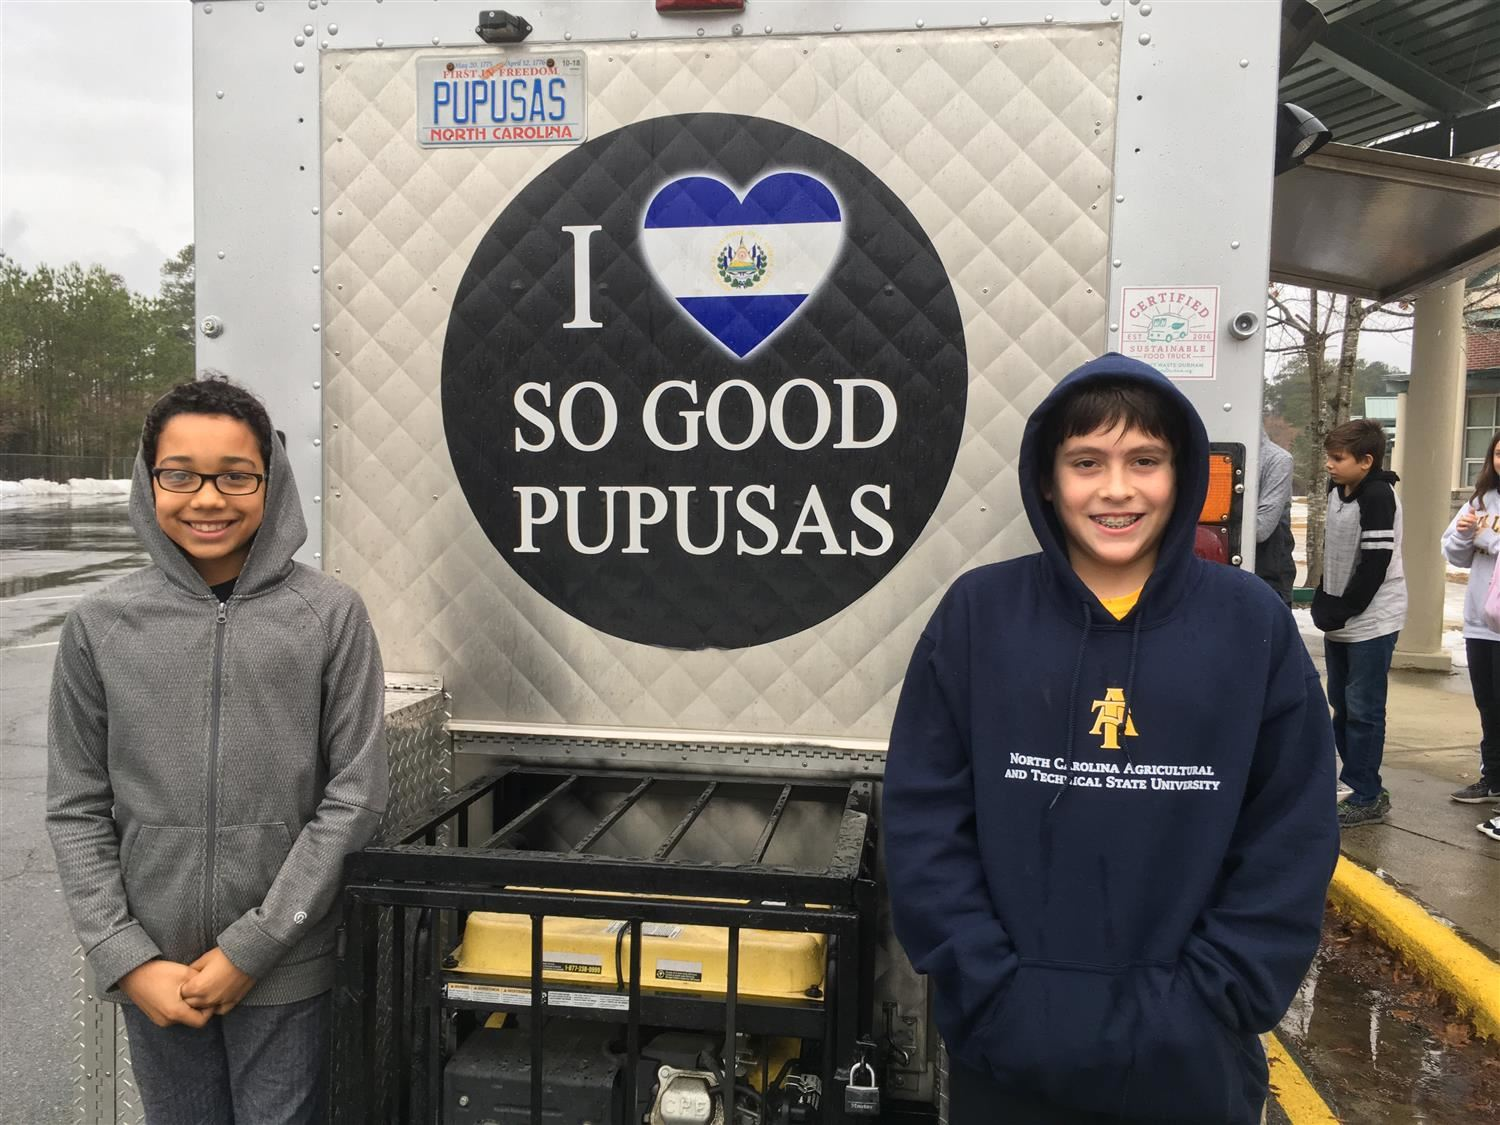 Two MMS students and So Good Pupusas